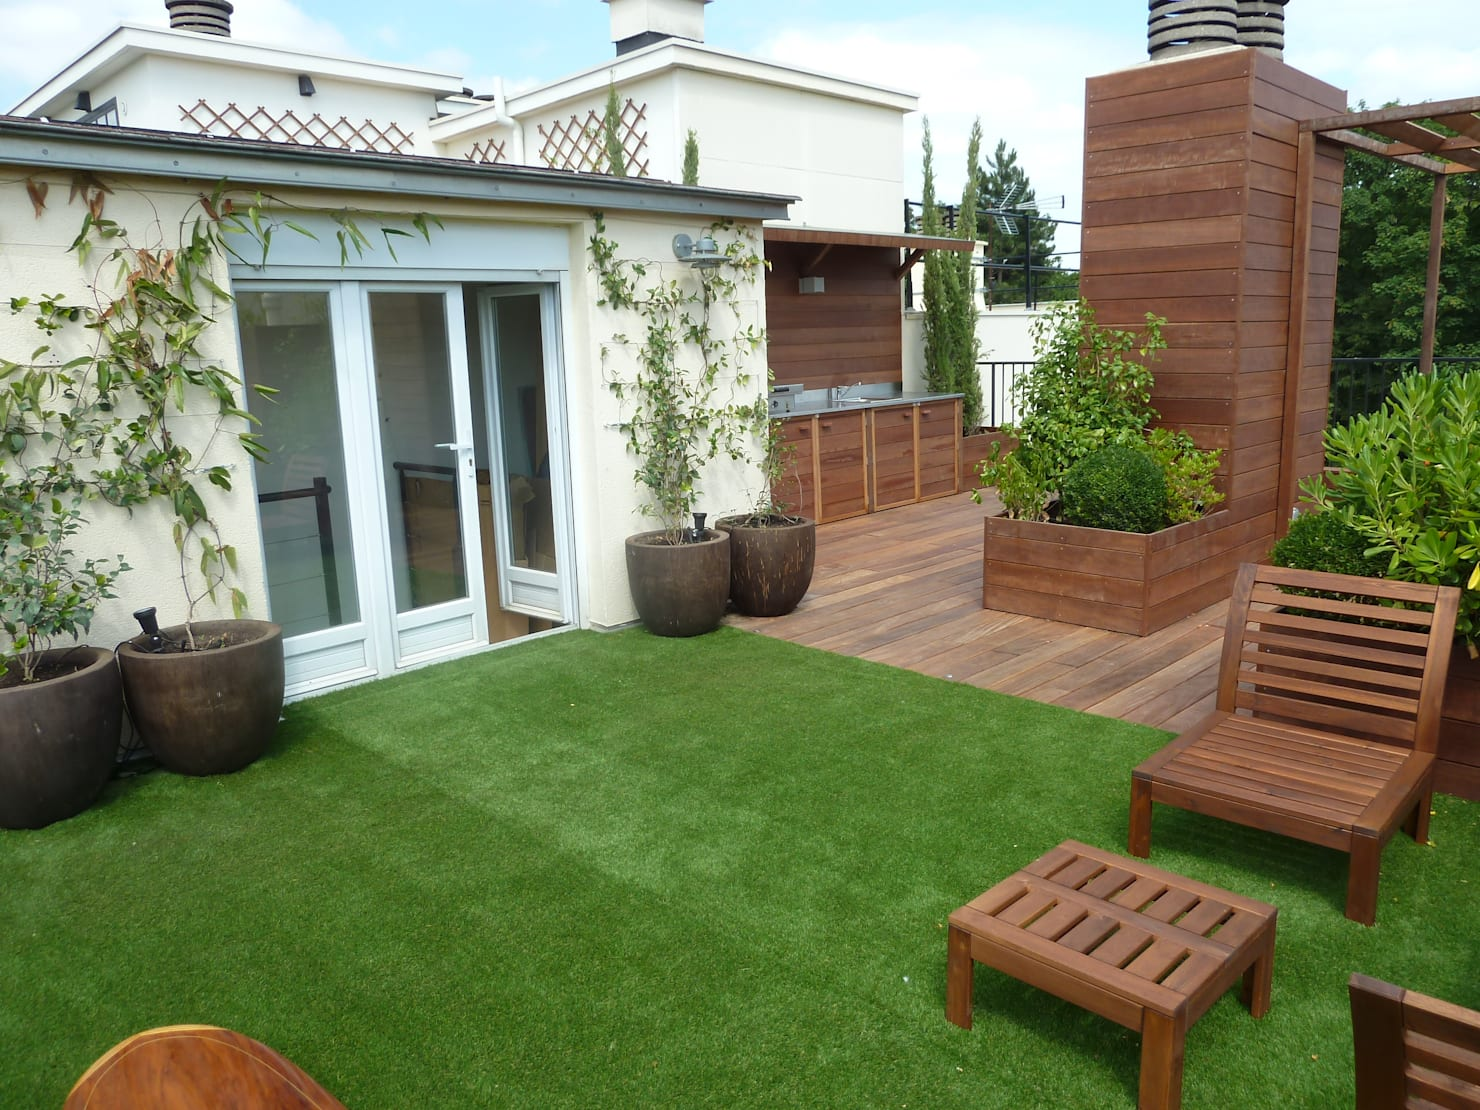 15 very real ways to use artificial grass in your garden